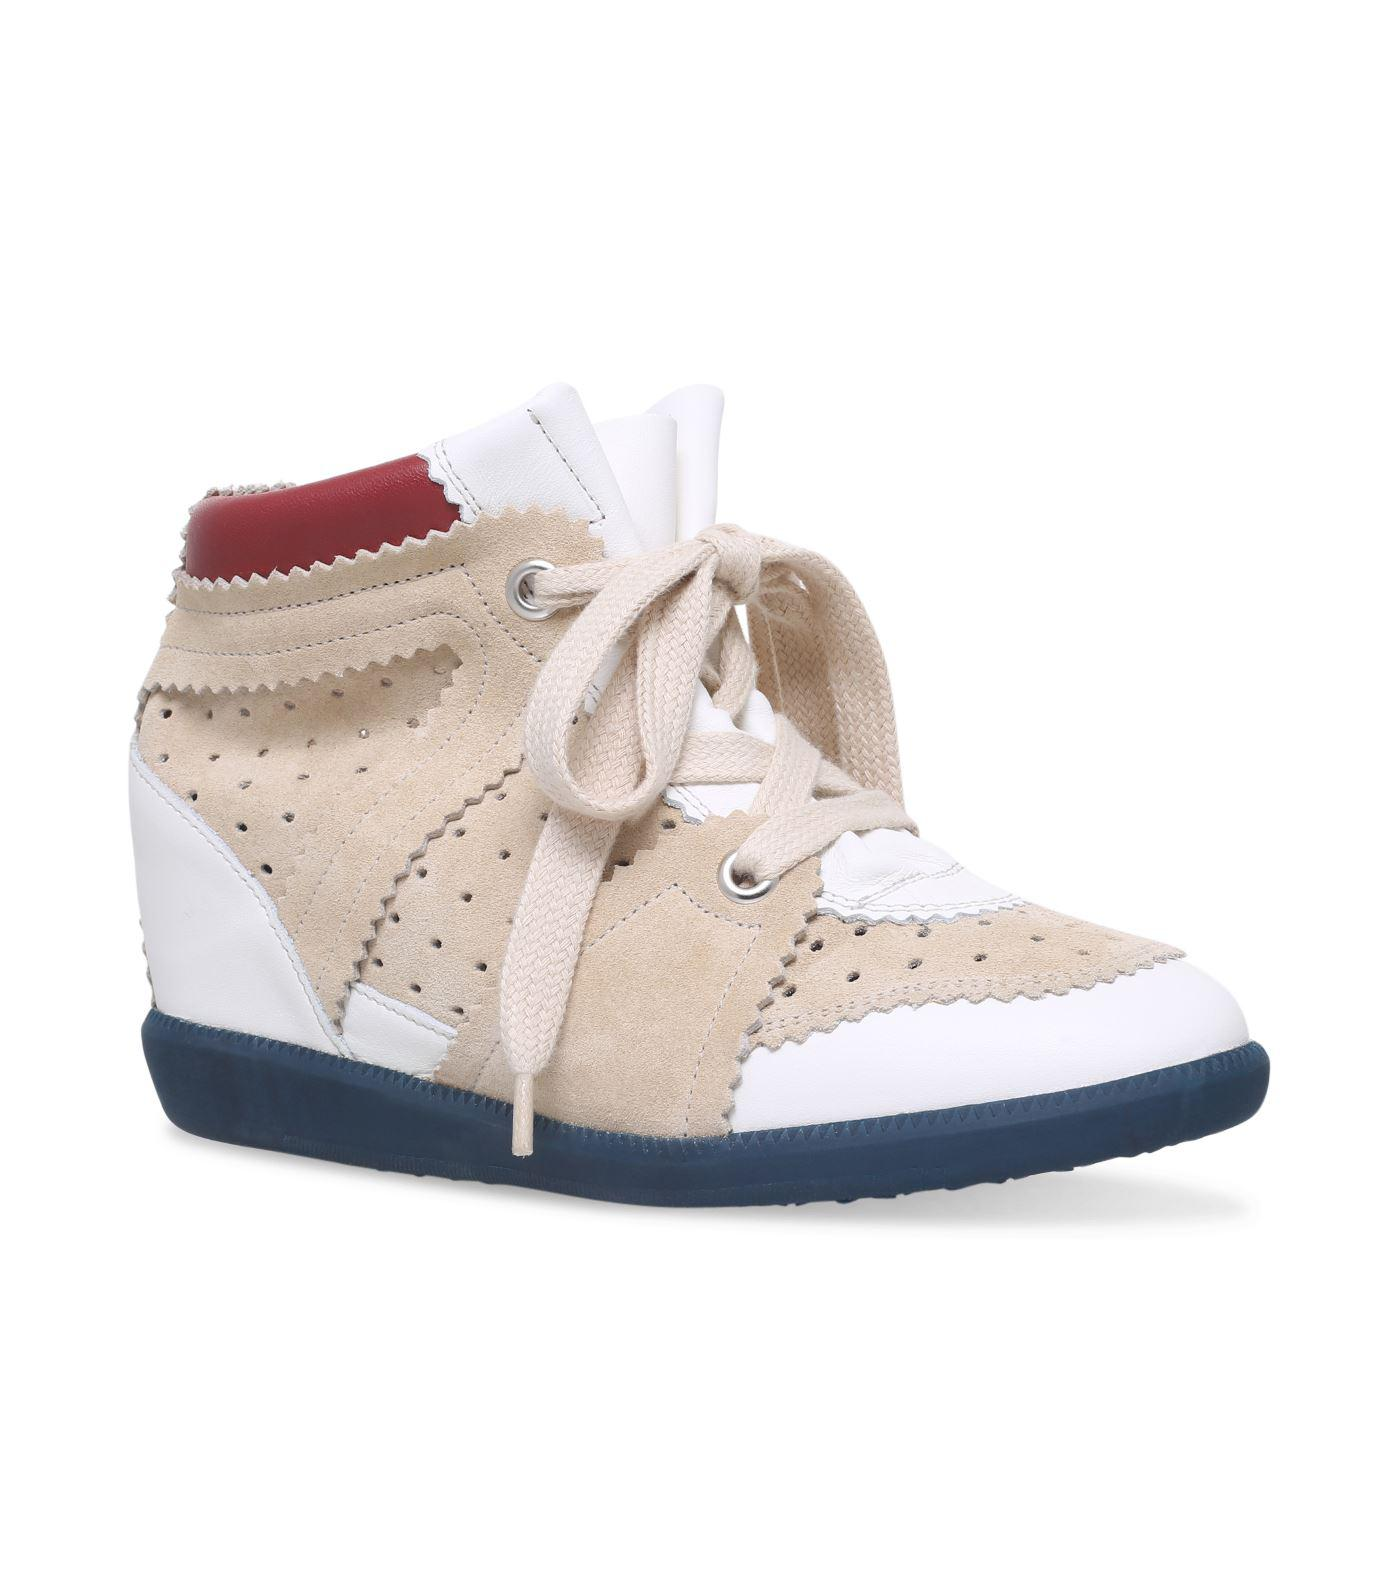 50464f04e36 Isabel Marant Leather Betty Wedge Sneakers 50 in White - Lyst